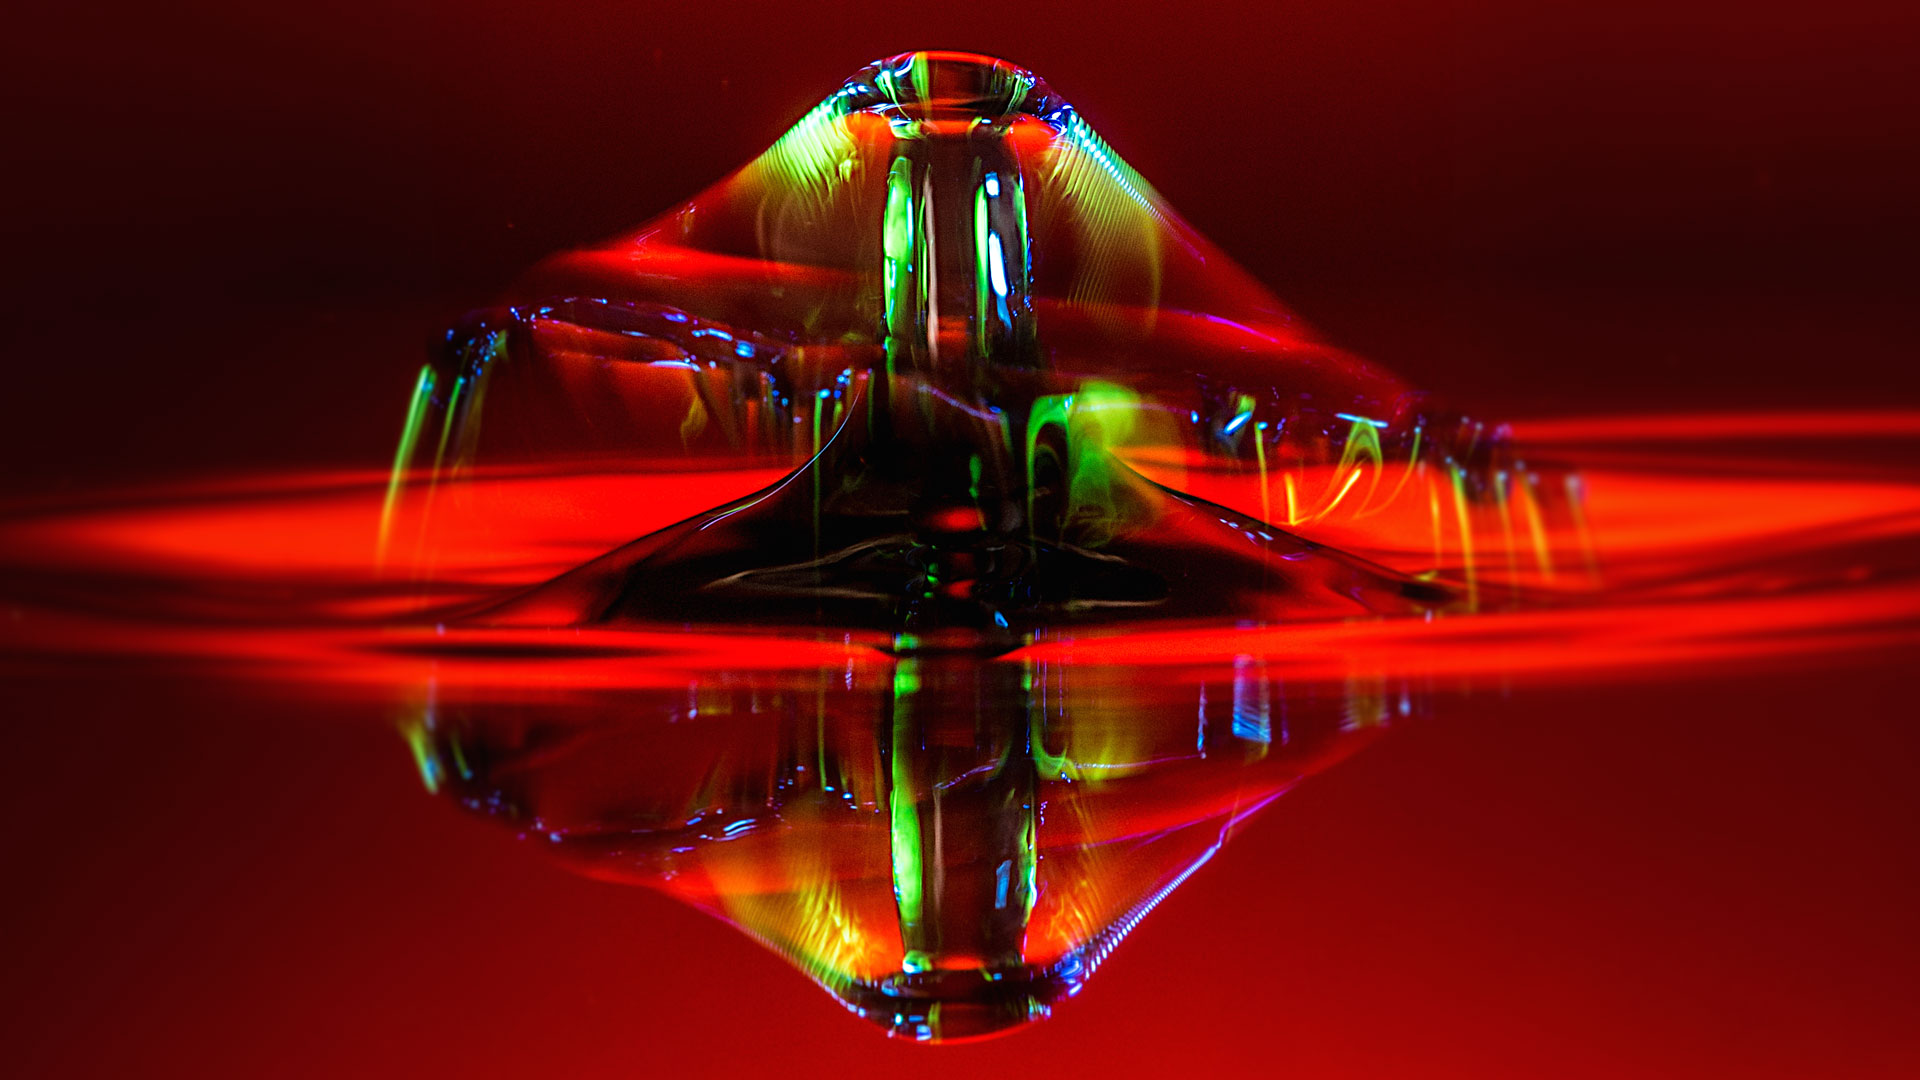 Water droplet image